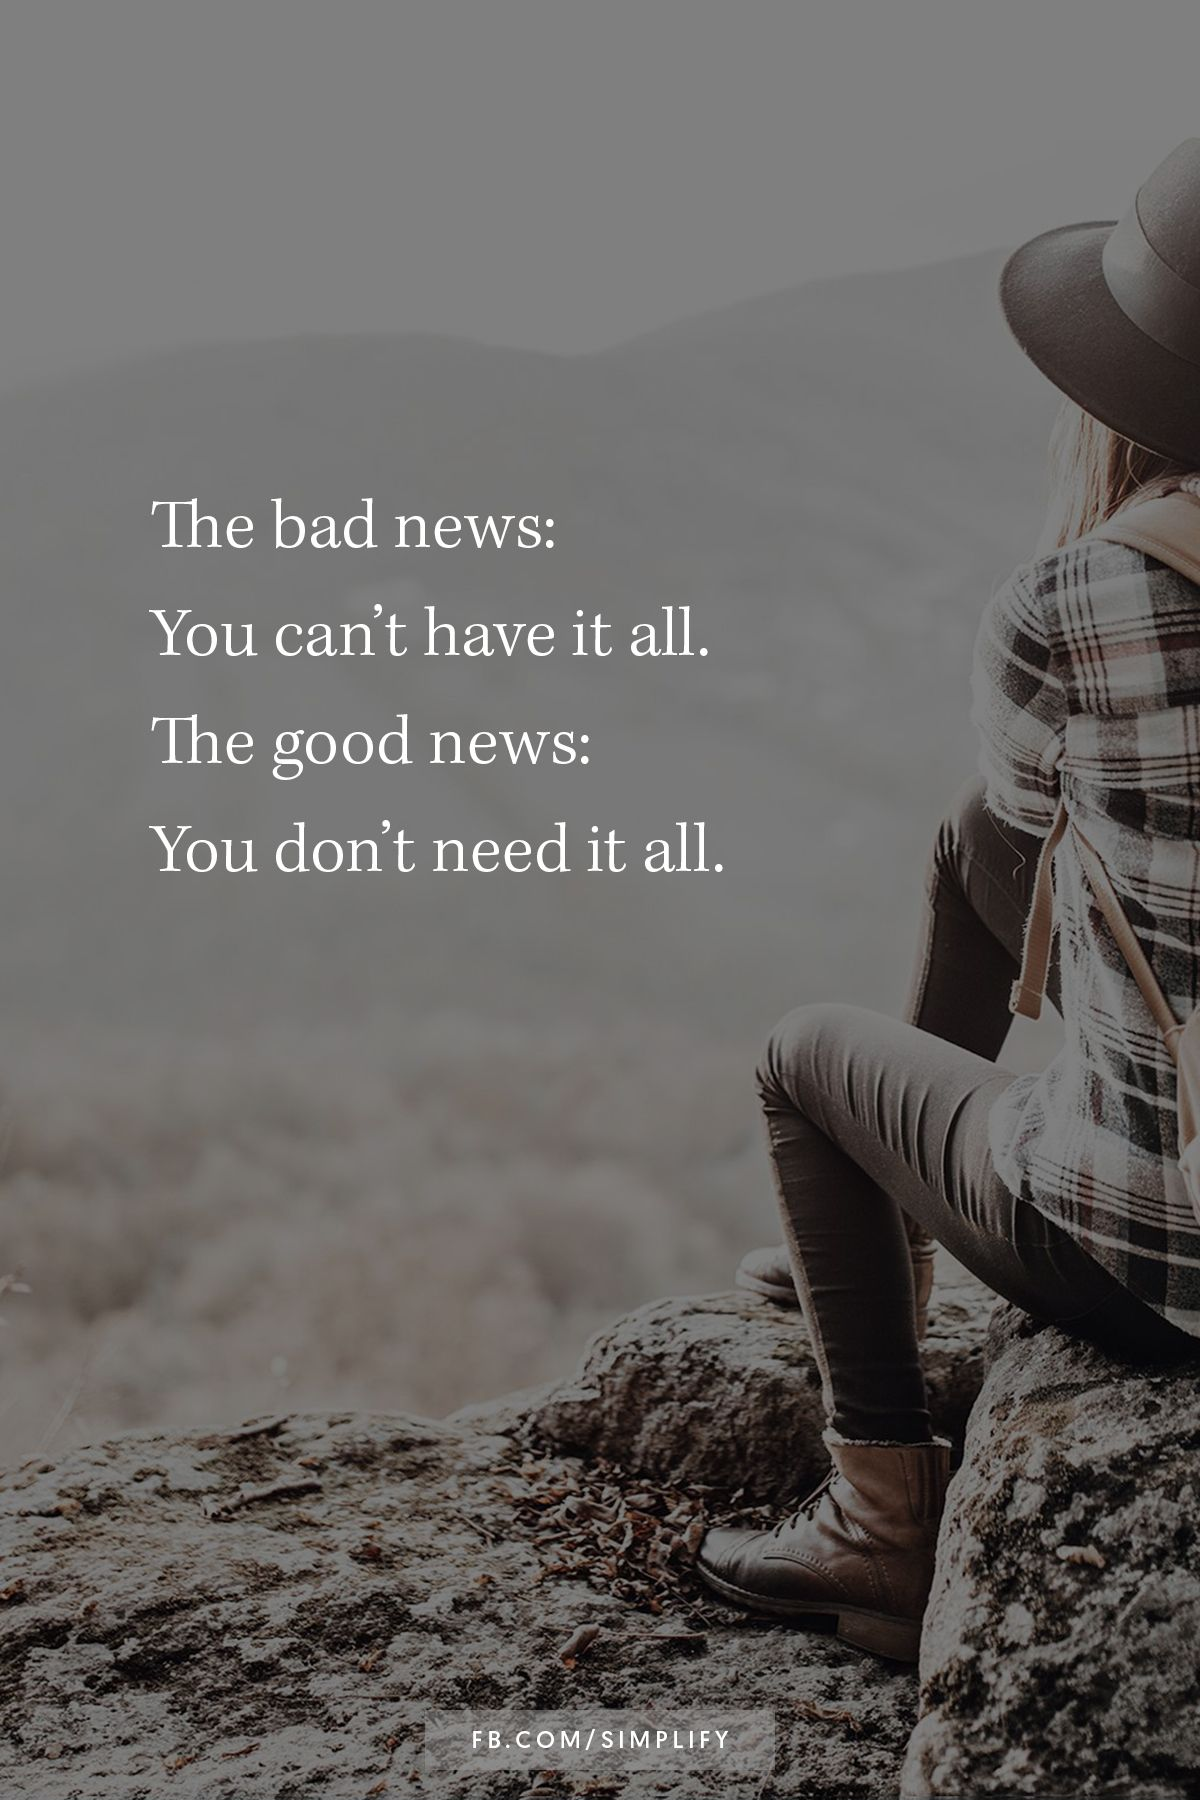 the bad news, you can't have it all, the good news, you don't need it all